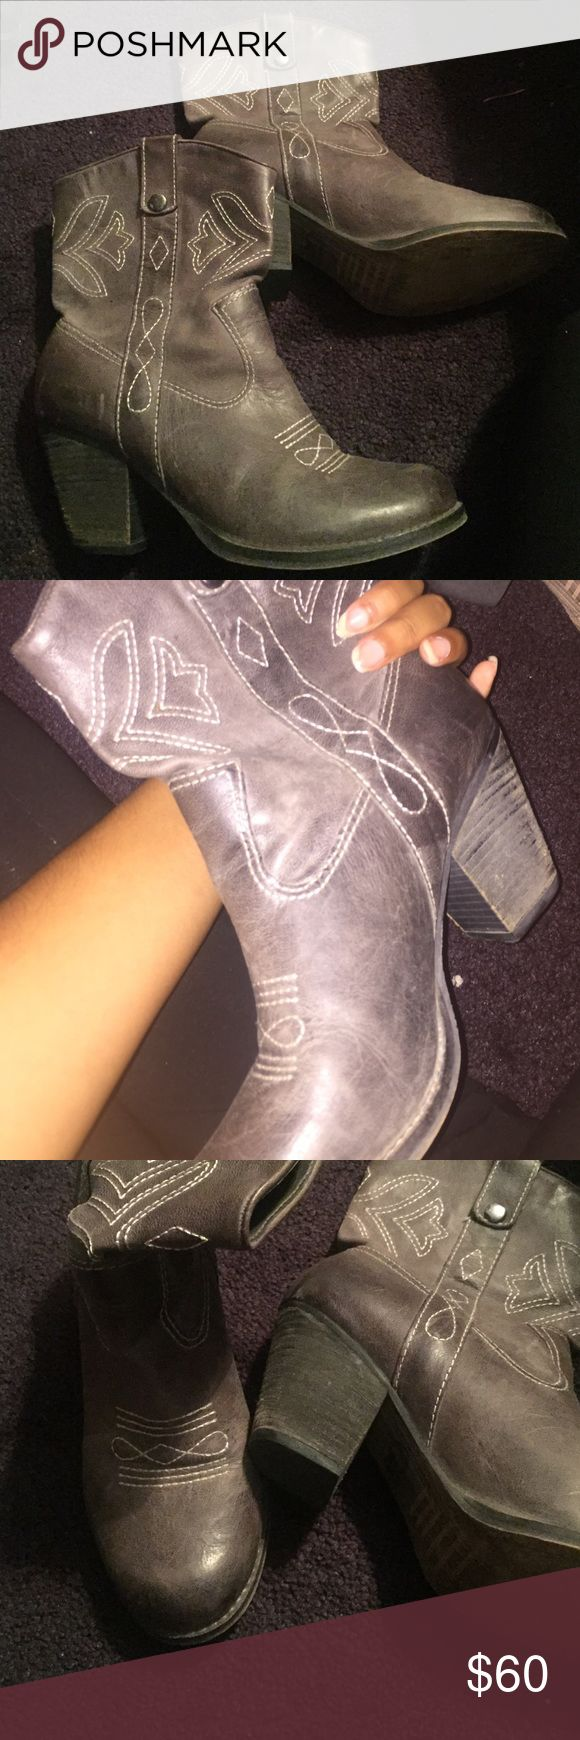 Grey short cowboy boots! Super cute! In perfect condition! Gianni Bini Shoes Ankle Boots & Booties